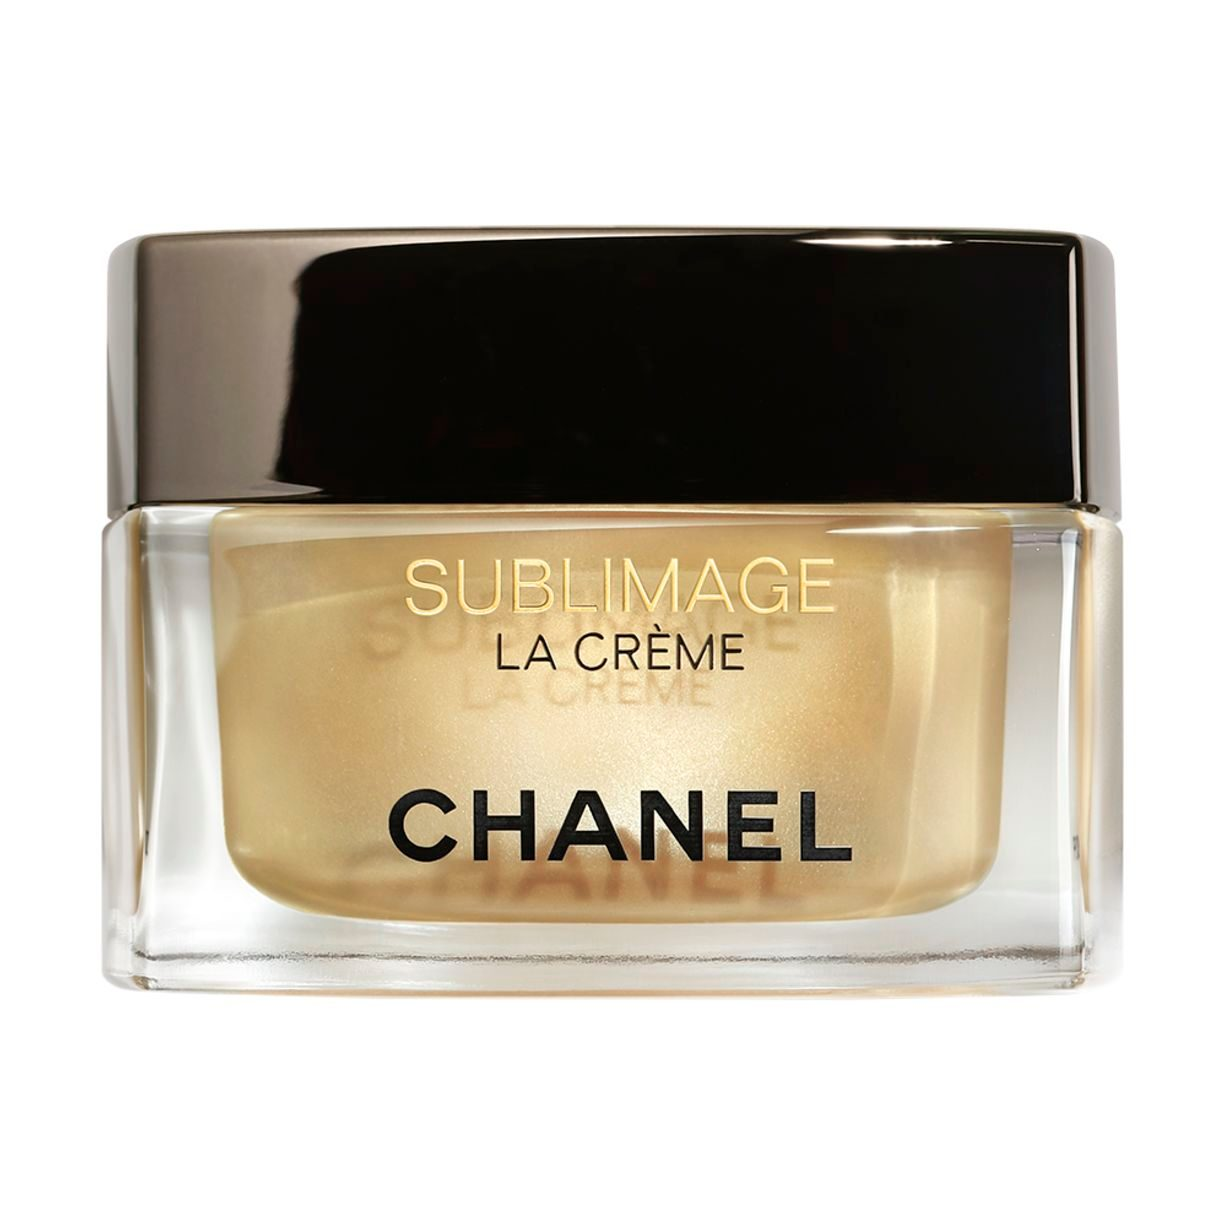 SUBLIMAGE LA CRÈME ULTIMATE SKIN REVITALIZATION JAR 50G